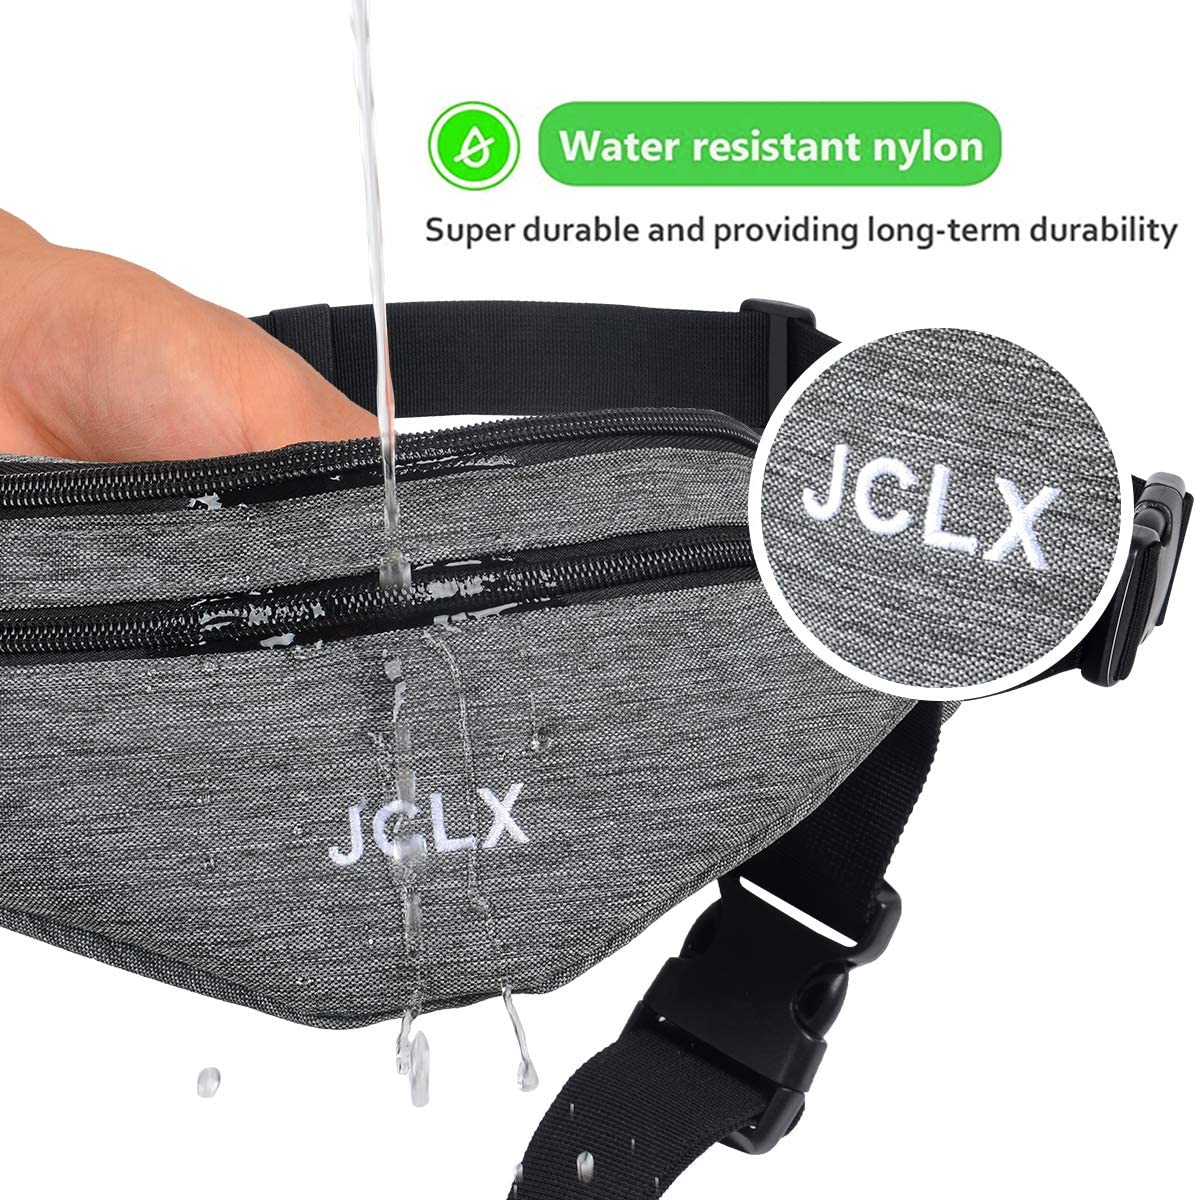 JCLX Fanny Pack Running Waist Pack Sport Workout Large Capacity Polyester Water Resistant Adjustable Waist Bags for Men /& Women in Running Cycling etc iPhone /& Android Gym Hiking